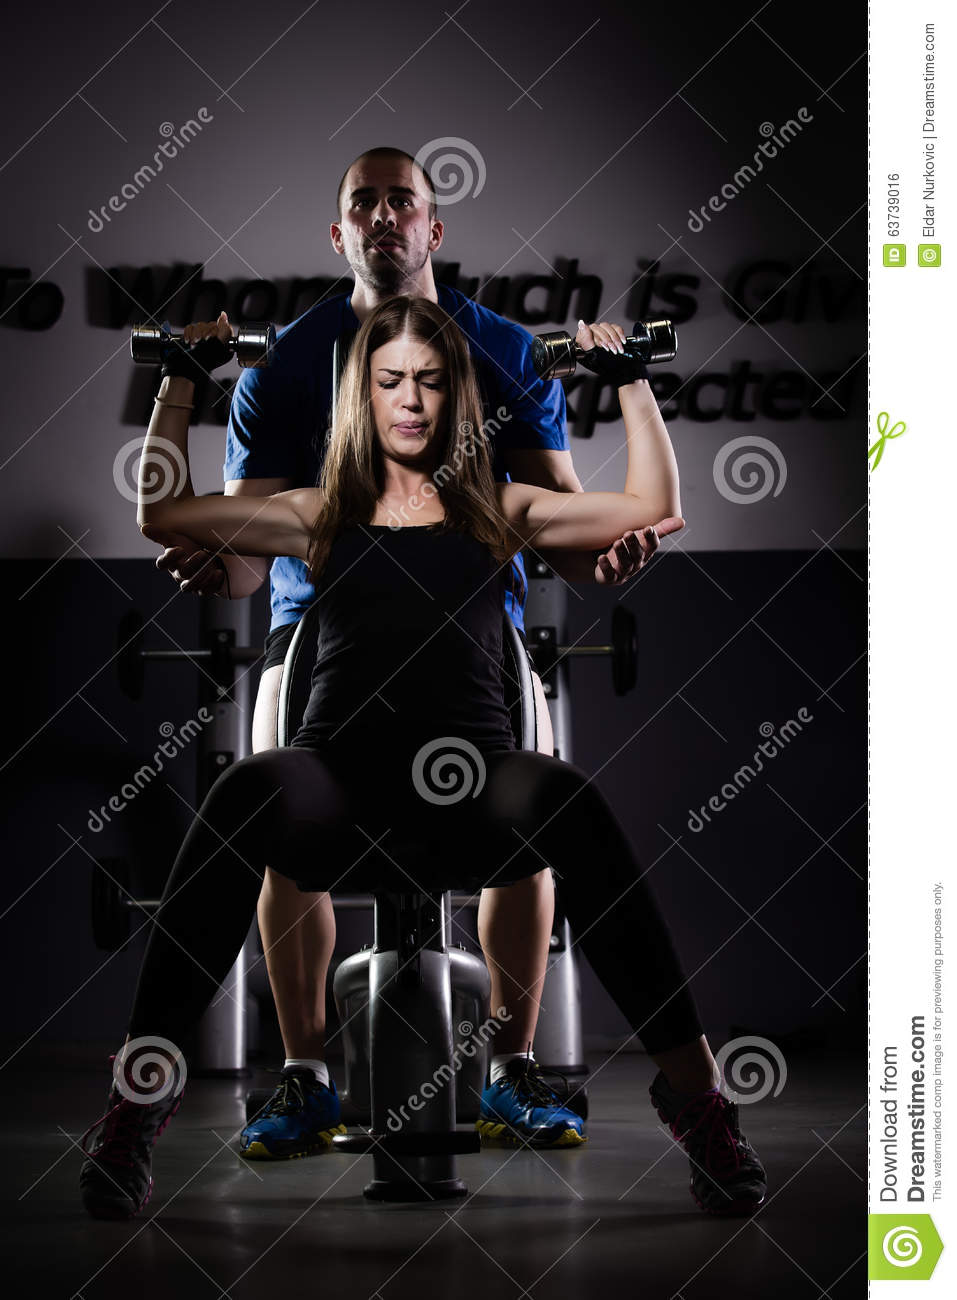 Woman weight training at gym.Woman doing pull-ups exercising lifting dumbbells